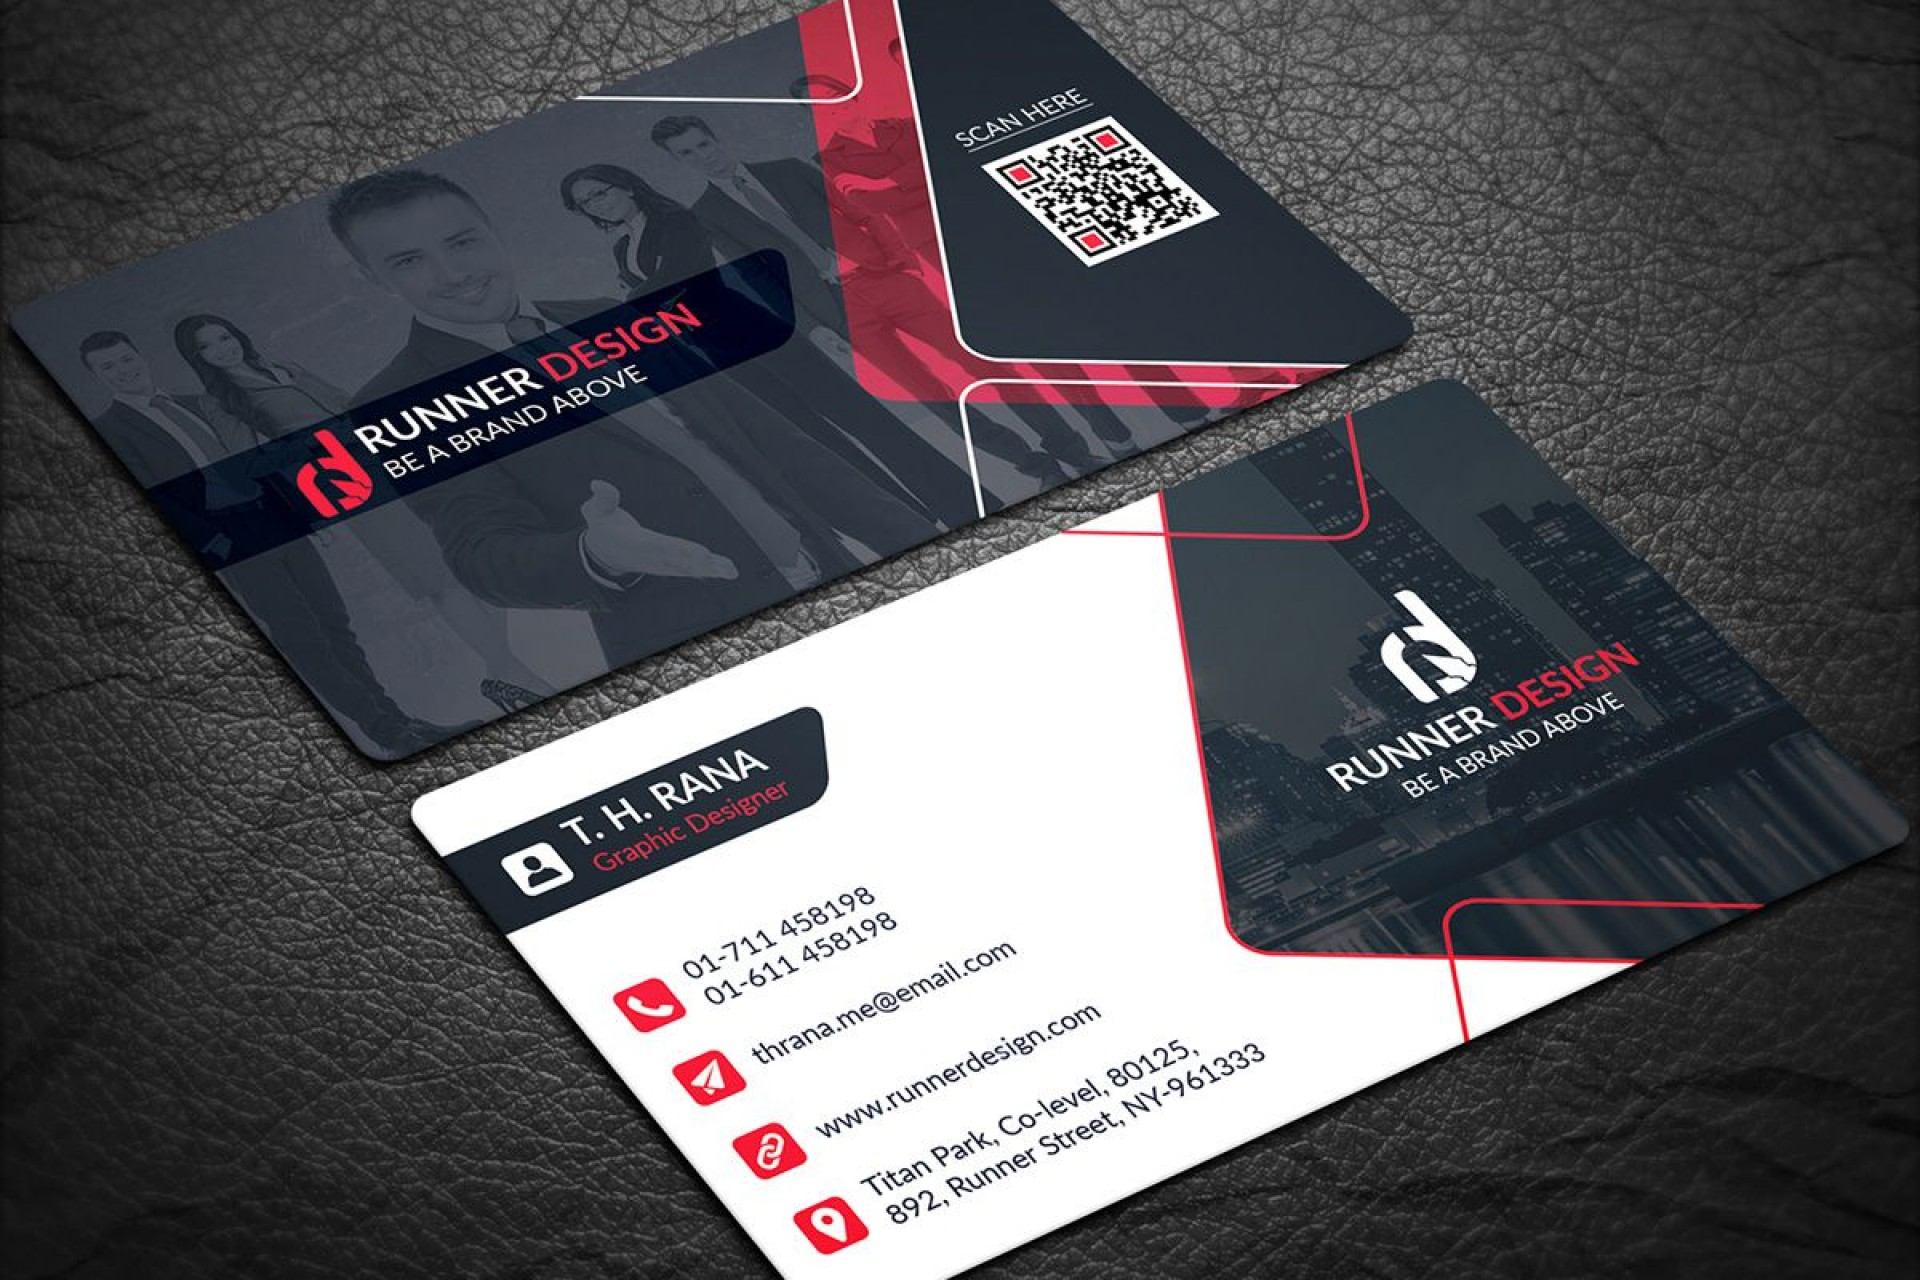 001 Staggering Psd Busines Card Template High Definition  Computer Free With Bleed1920